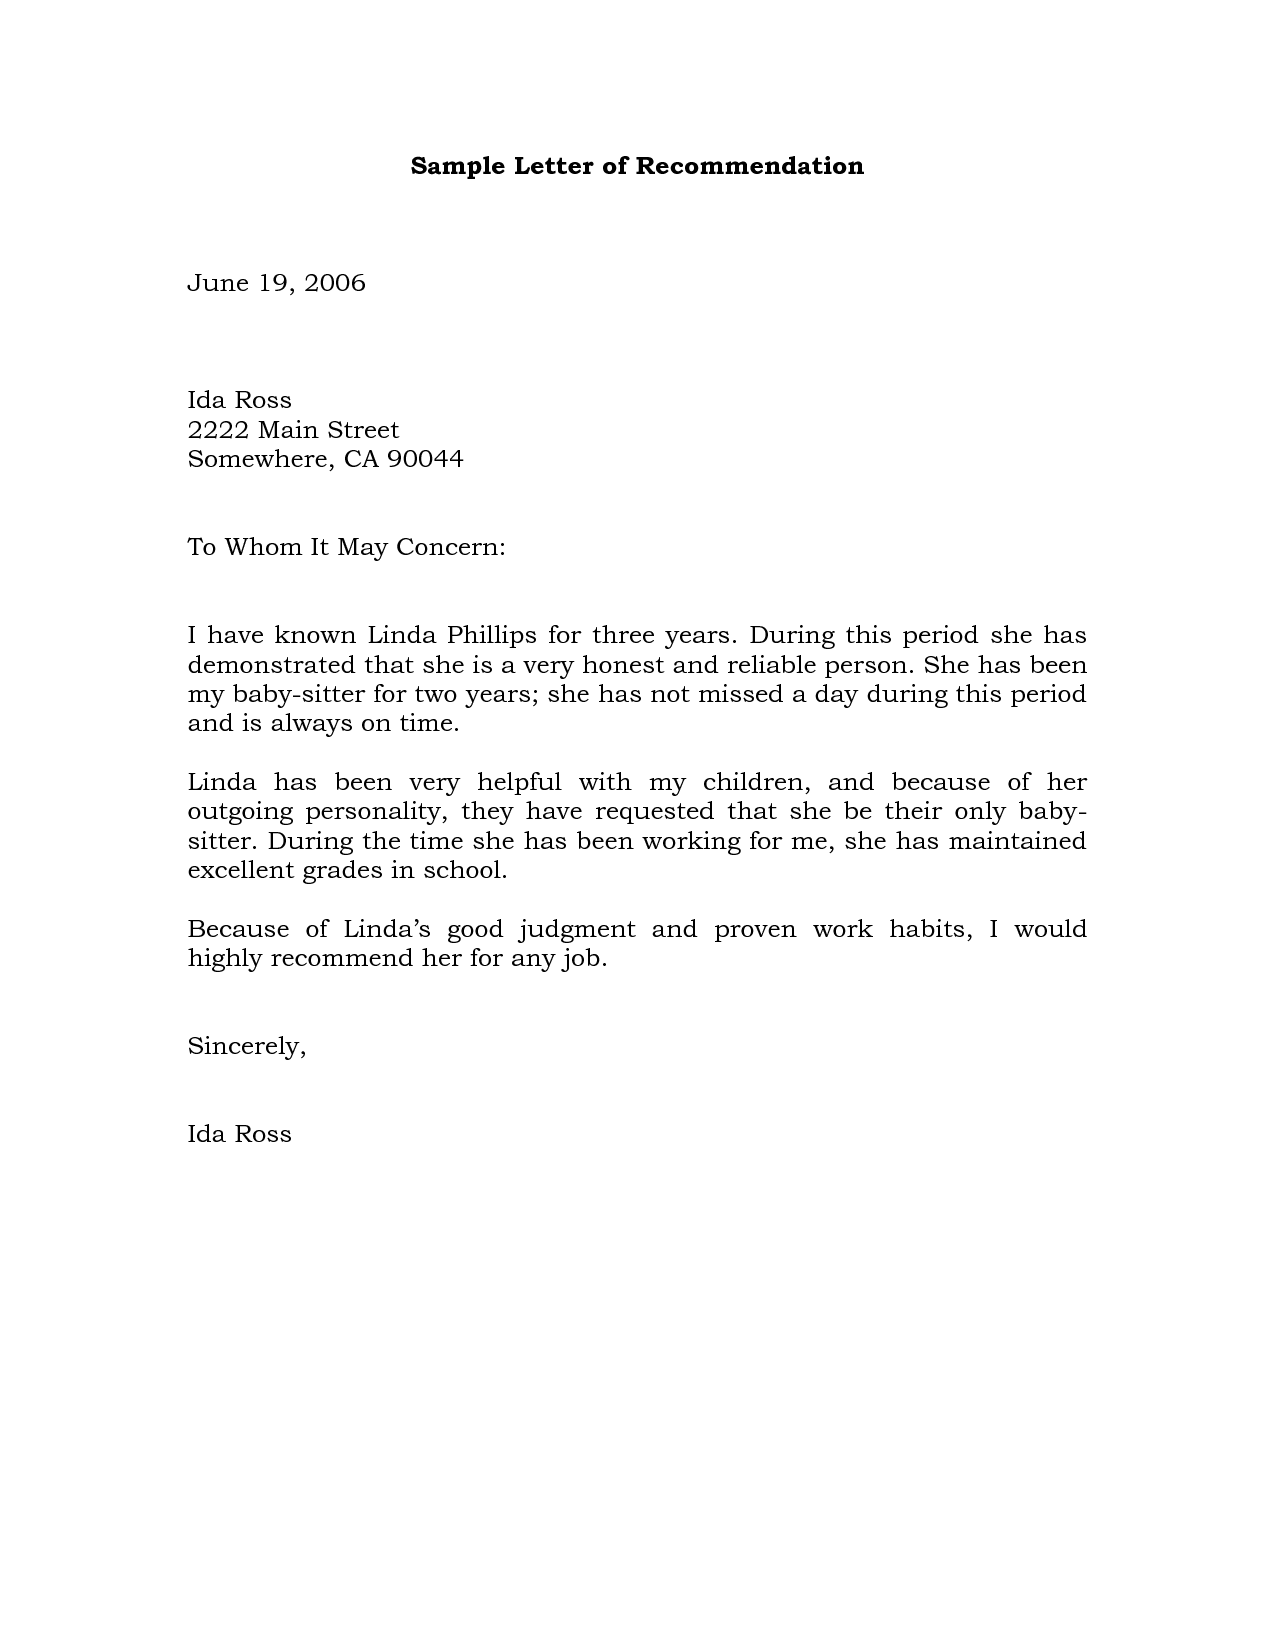 Business Recommendation Letter - Here is a sample recommendation ...